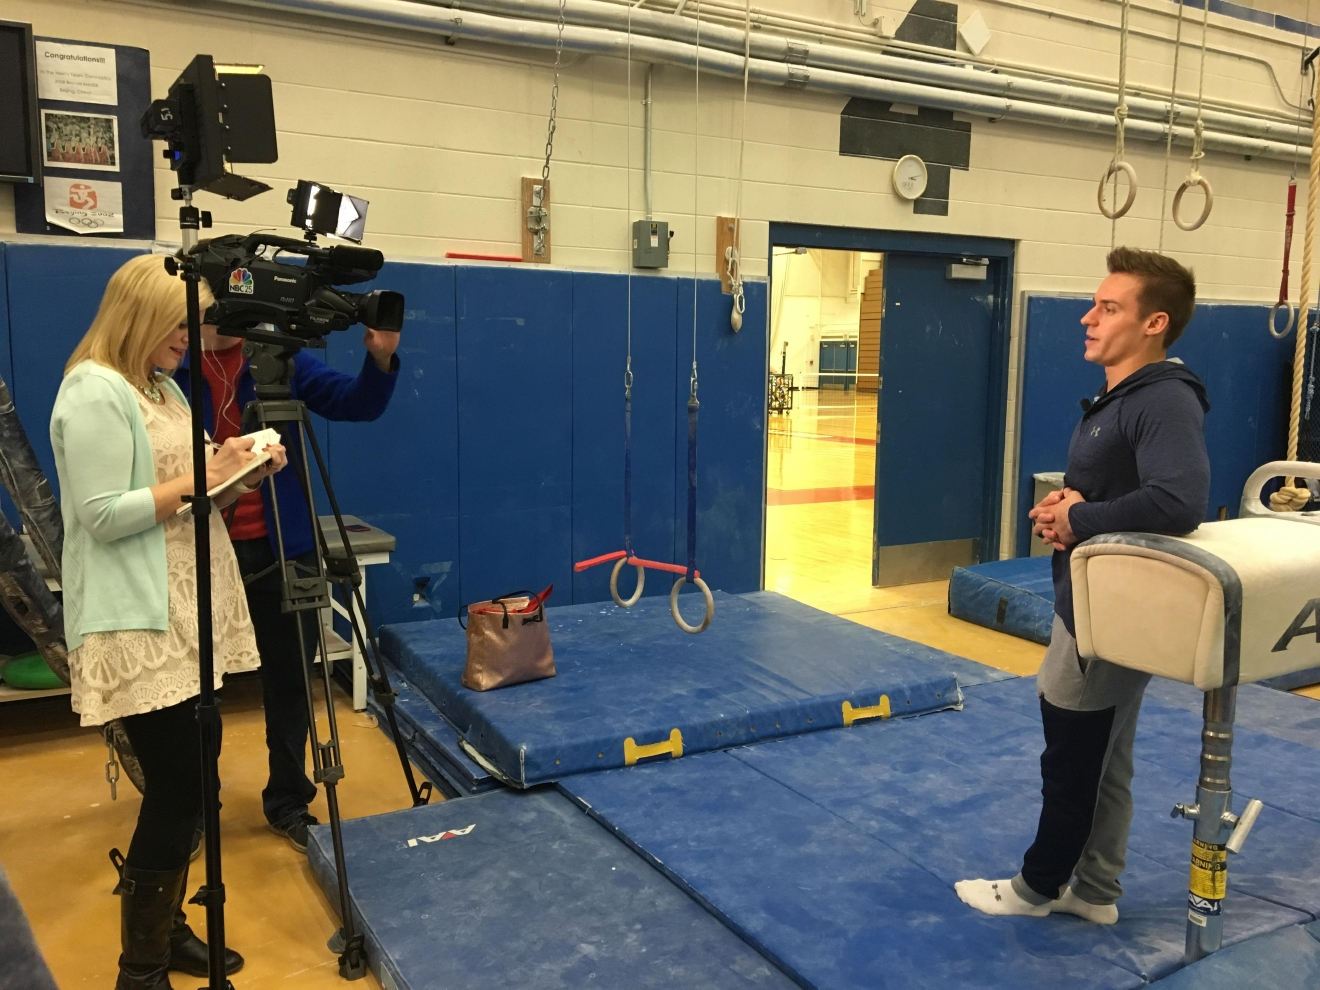 NBC 25 Anchor, Sadie Hughes, at the Olympic Training Center in Colorado Springs, Colorado, interviewing Team USA gymnast, Sam Mikulak. Photo Credit: Michael Horne.